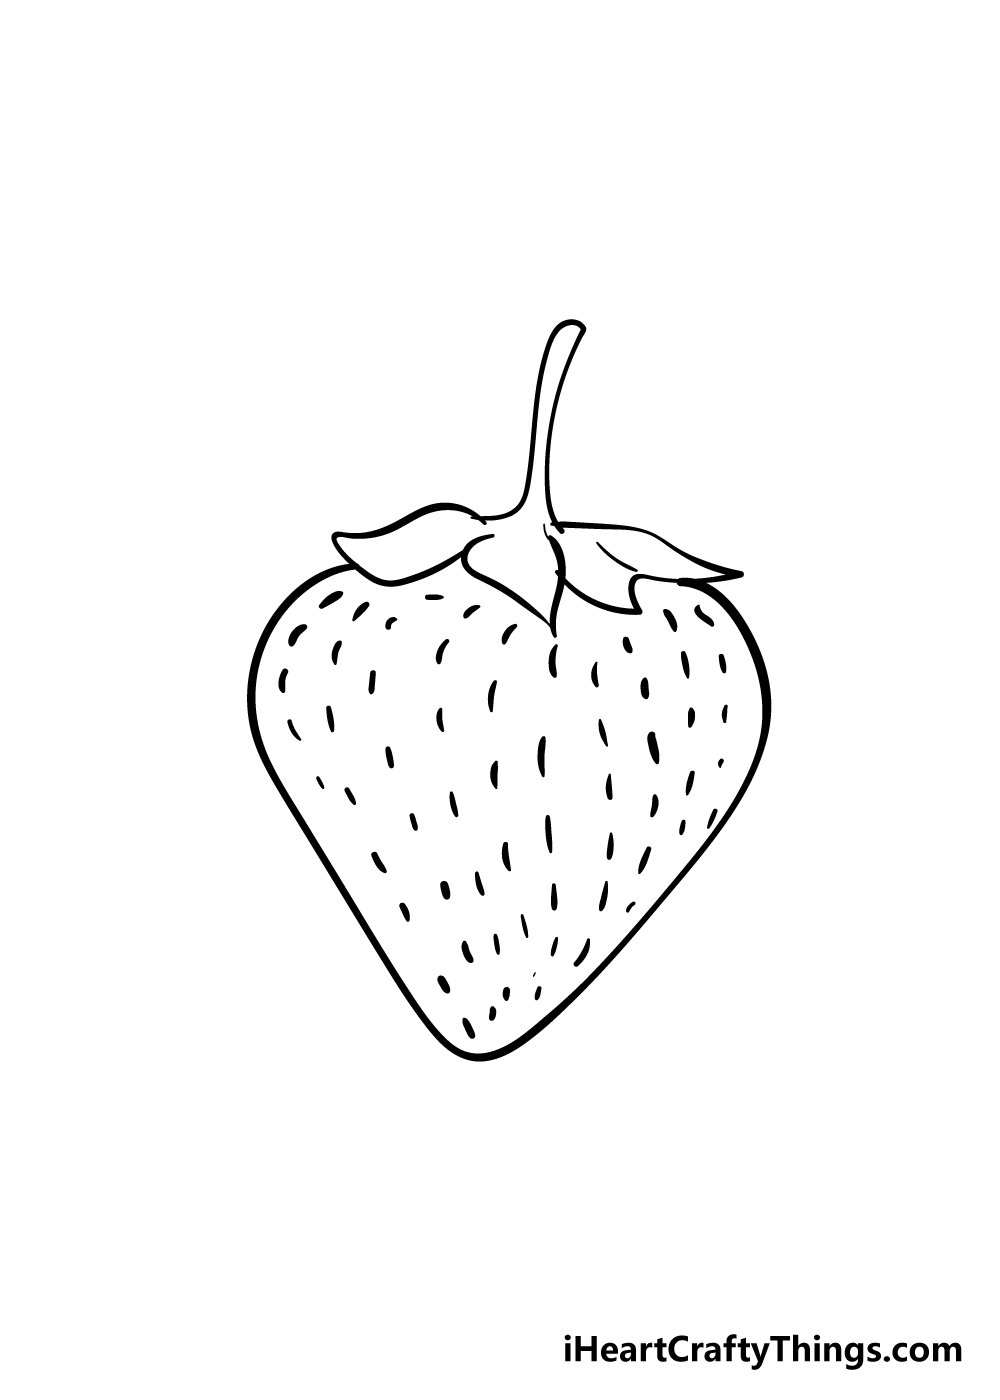 strawberry drawing step 5